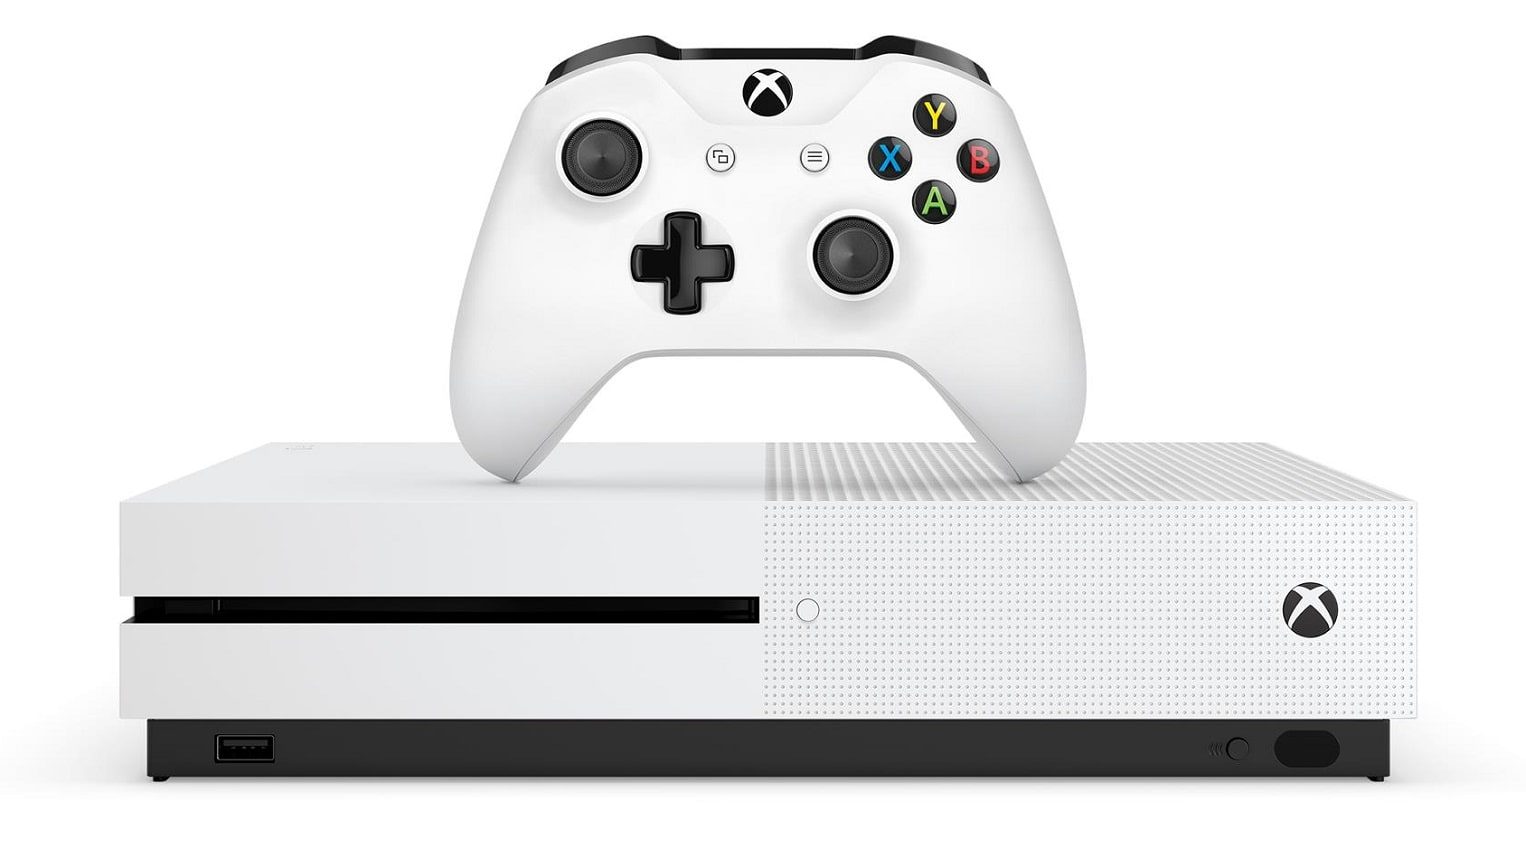 xbox one x against a white background